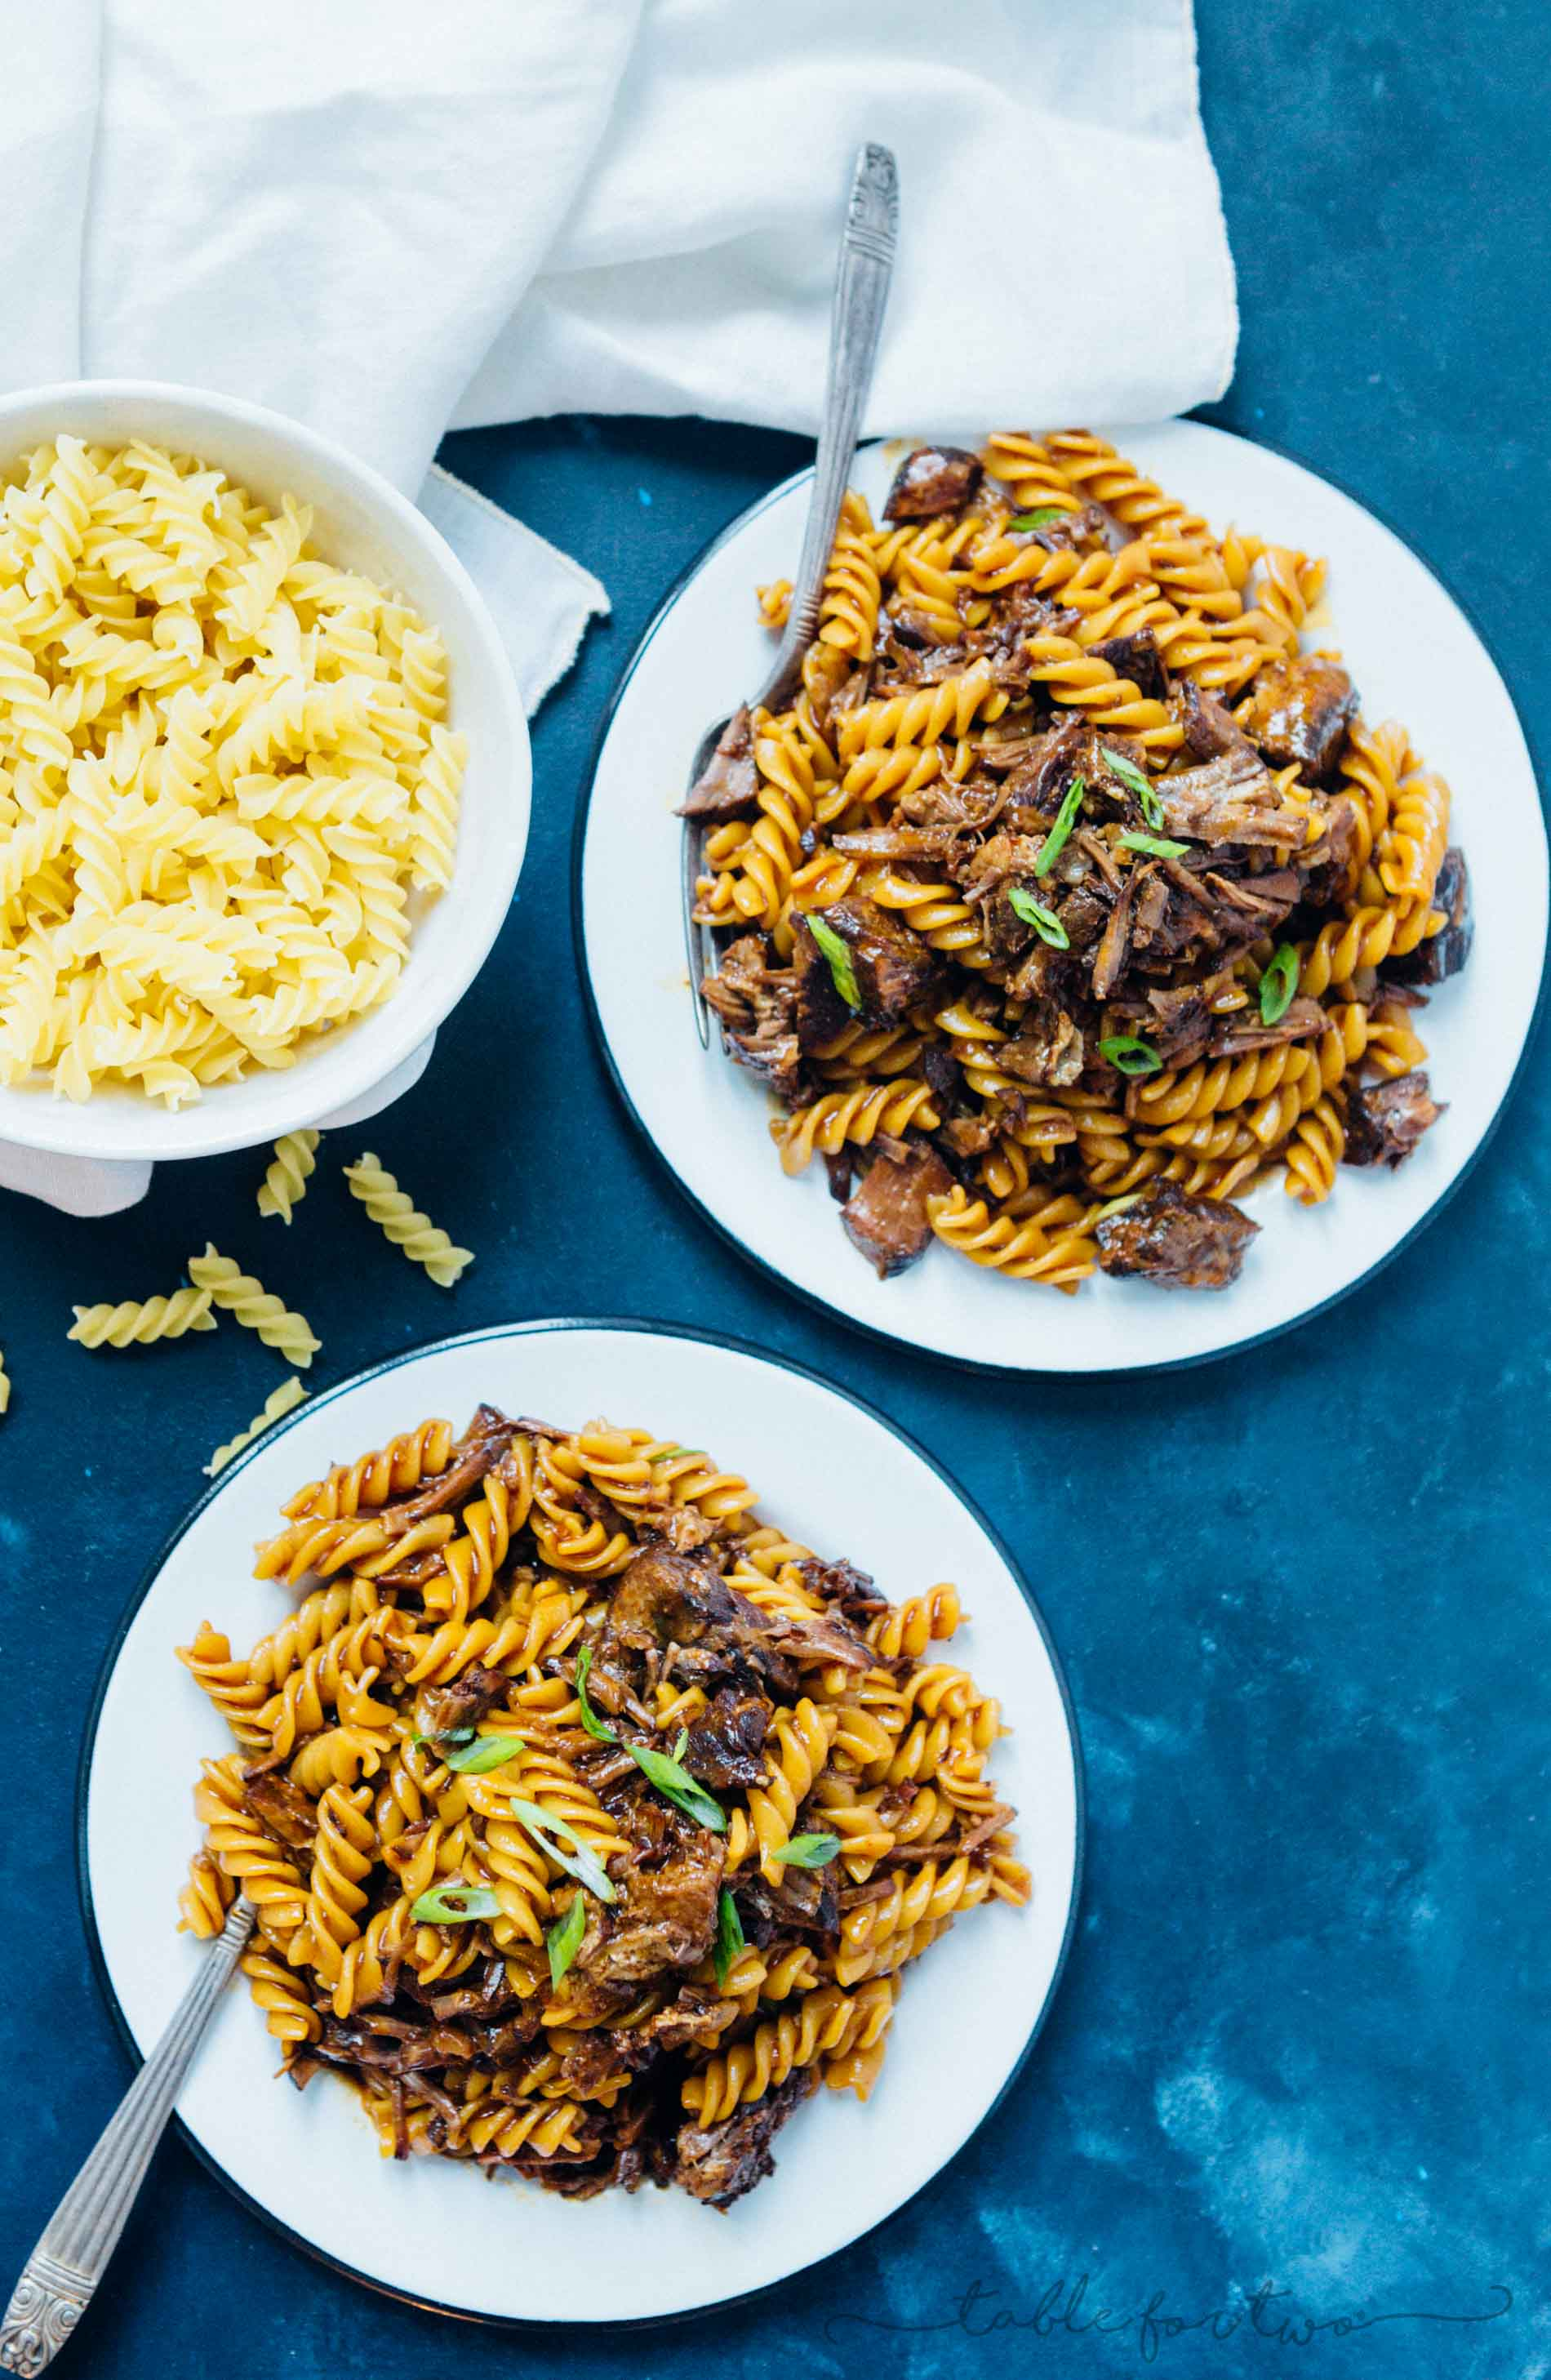 This pressure cooker (Instant Pot) braised Korean beef ragu has got spice, depth of flavor, and so much goodness. Best part? Pressure cooker friendly which means super tender and fall apart beef in about 40 minutes! This is the stick to your ribs dish you'll want when you are in the mood for a rich and dense dish!